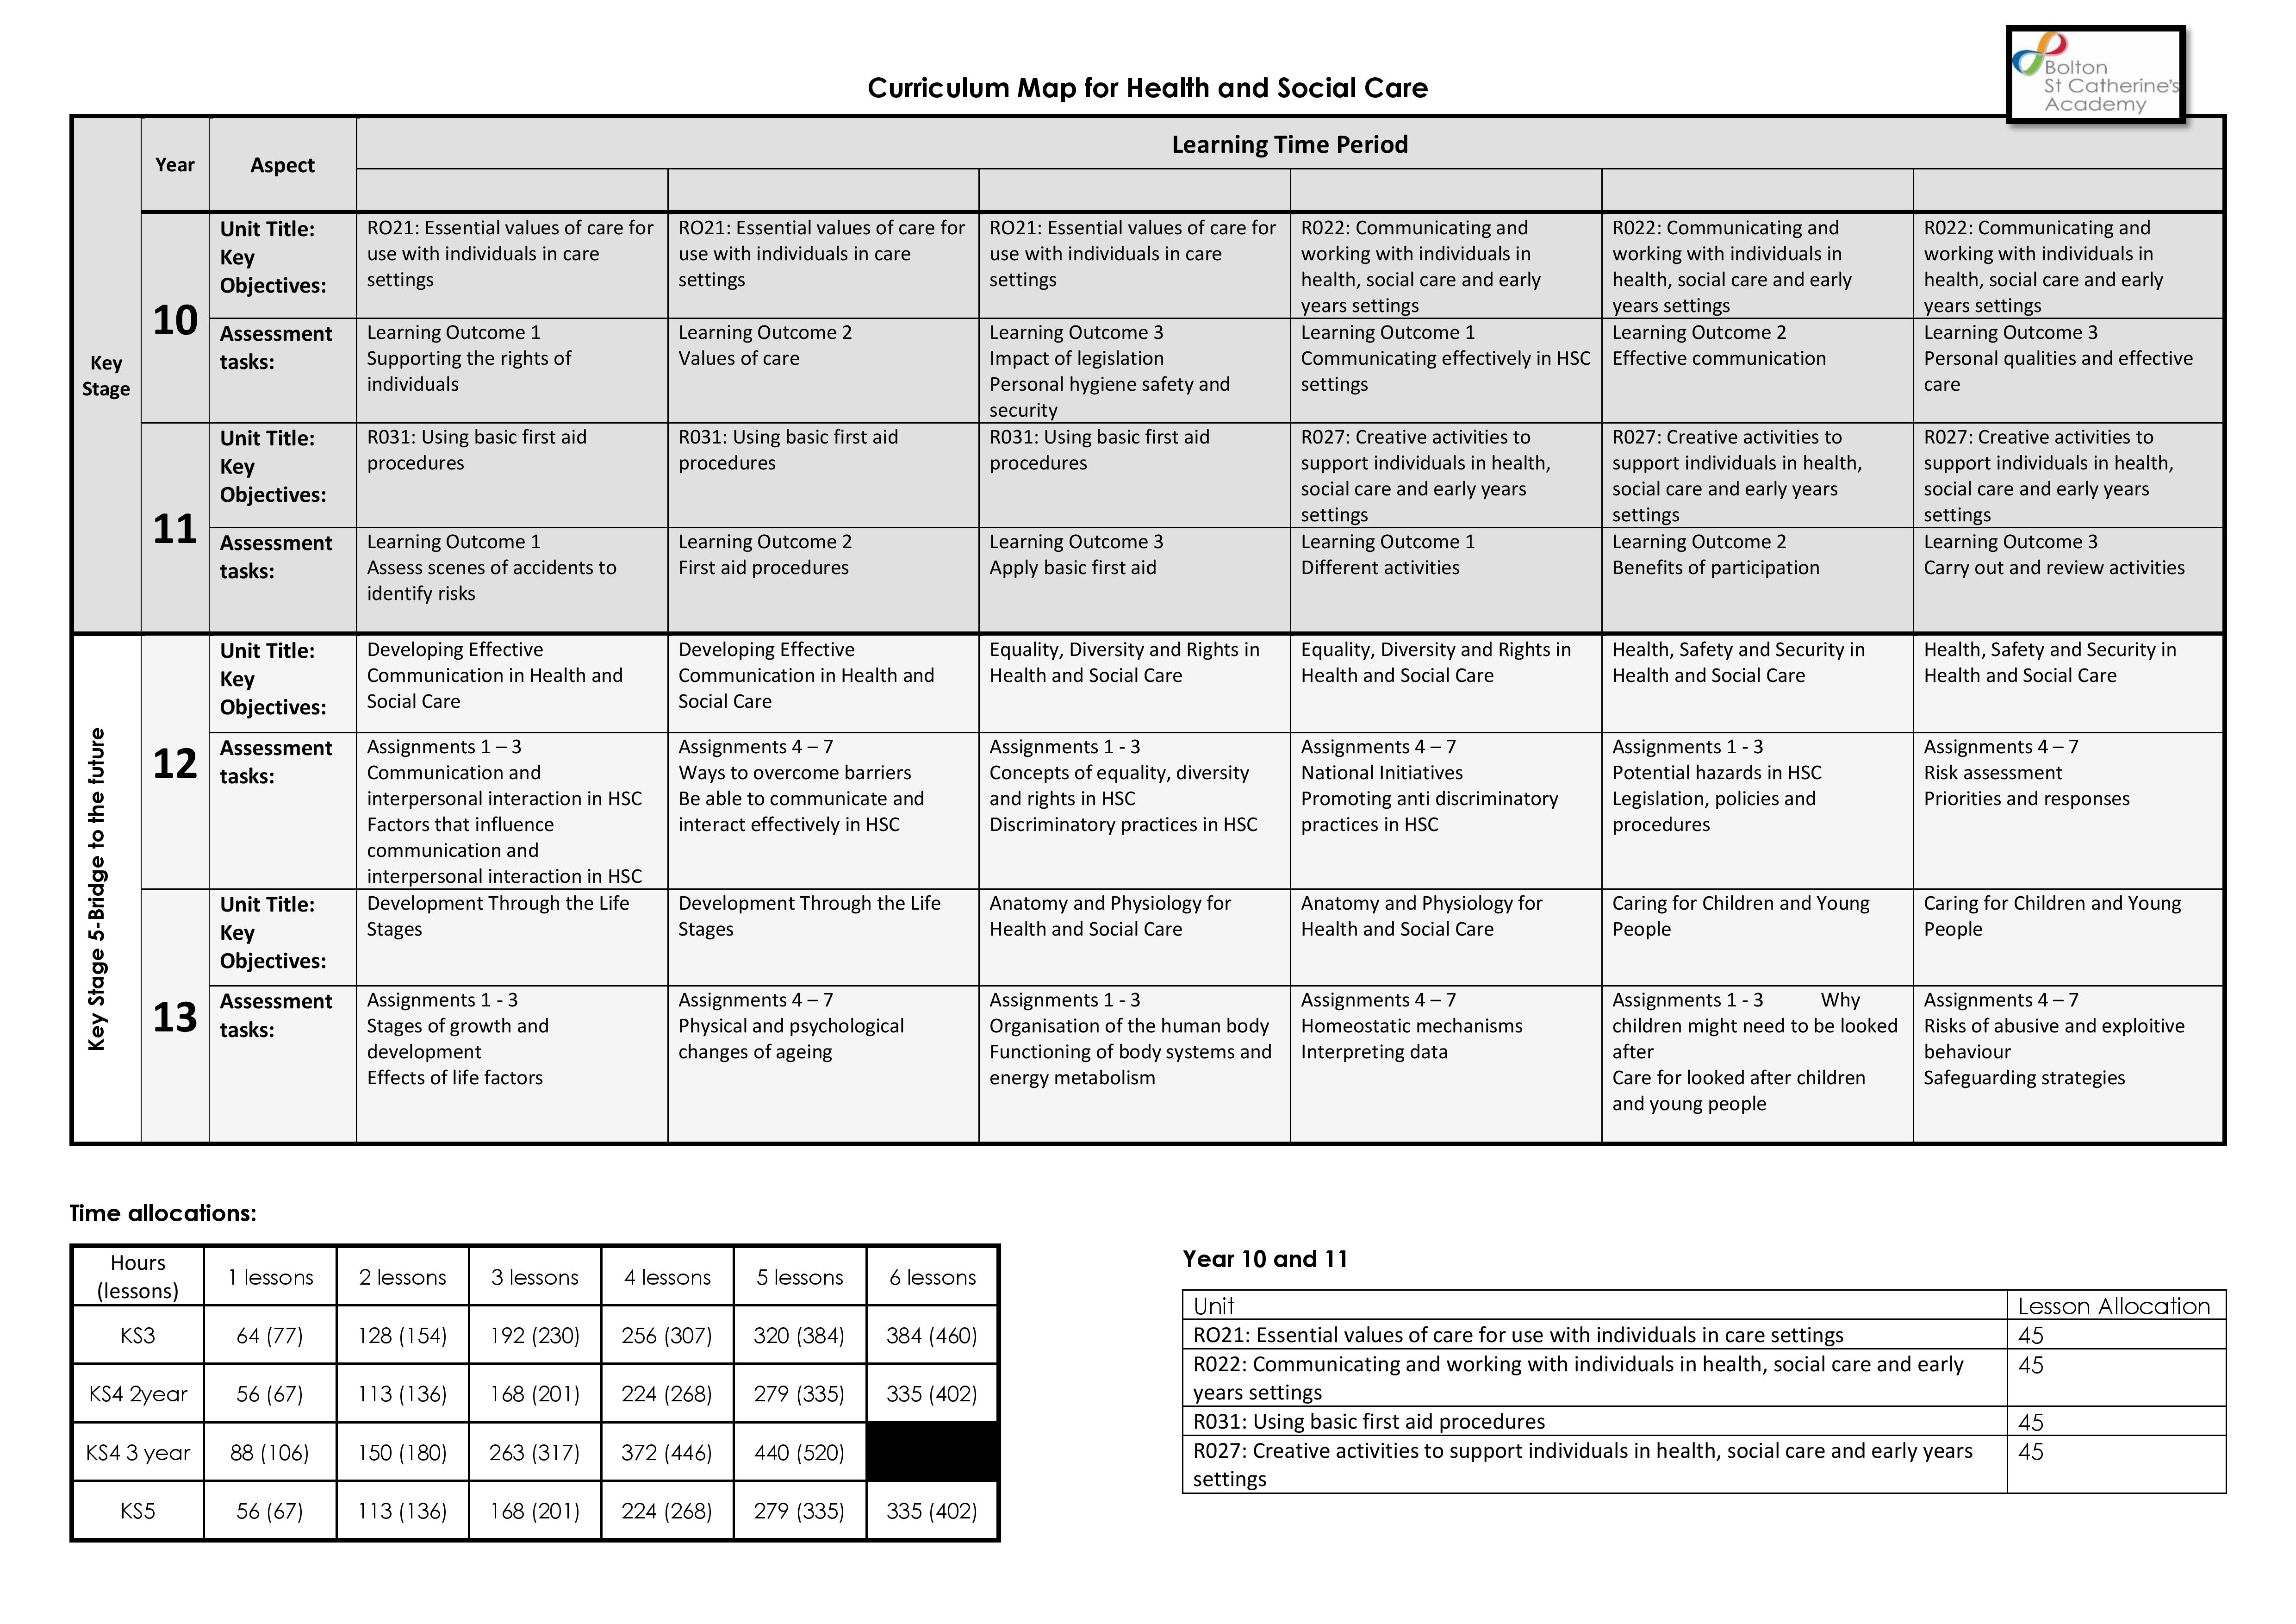 Curriculum Map for Health and Social Care 201920-page-001.jpg